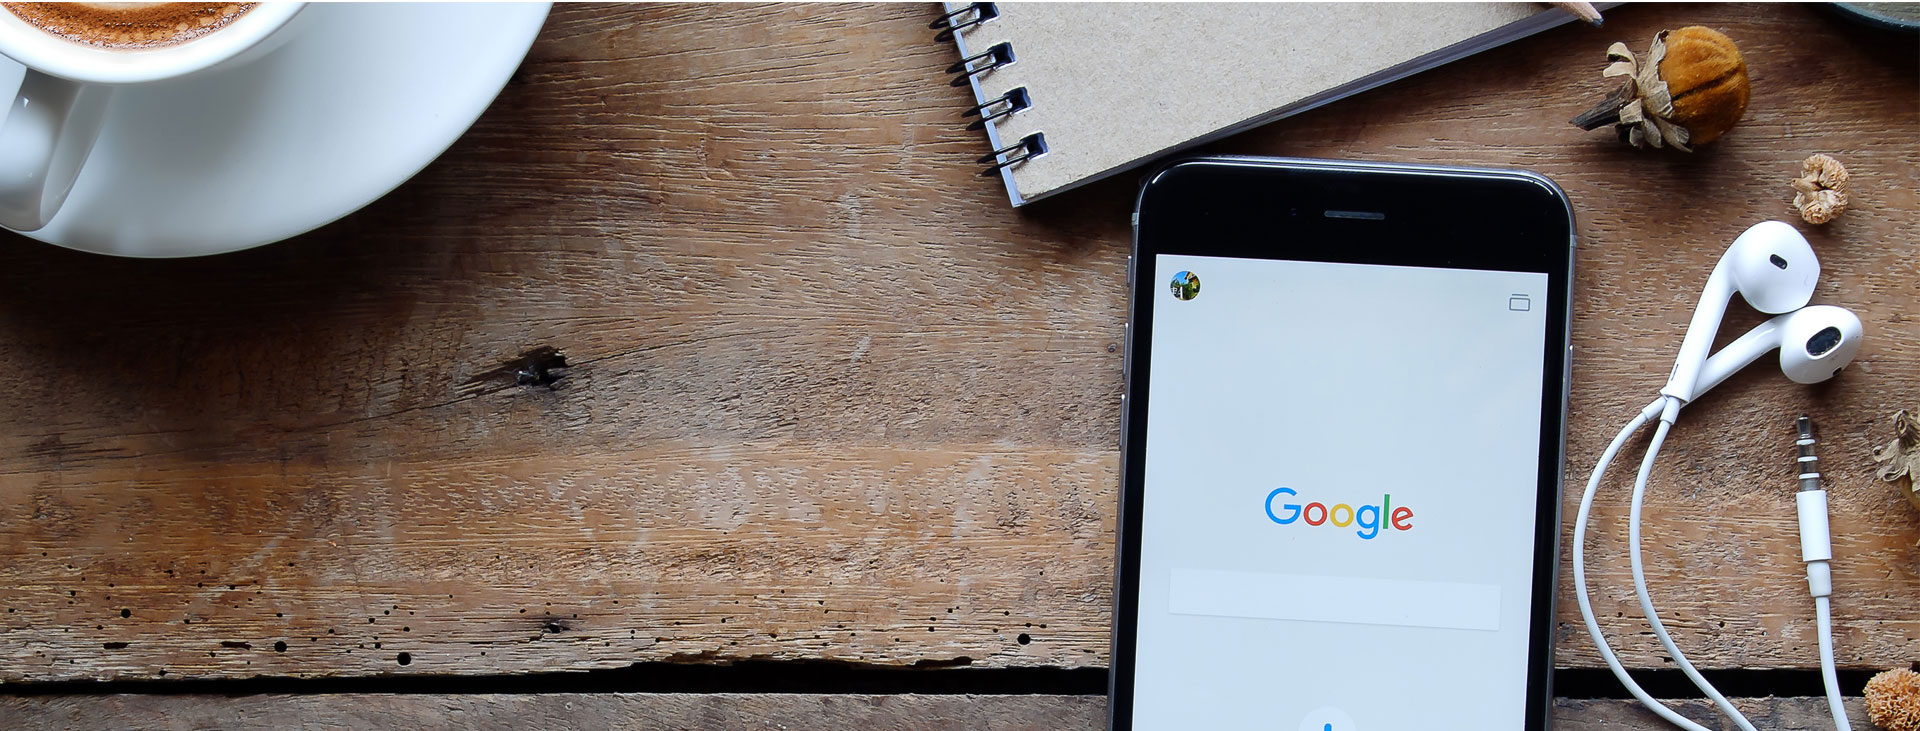 How to prepare your WordPress site for Google's Mobile First Index